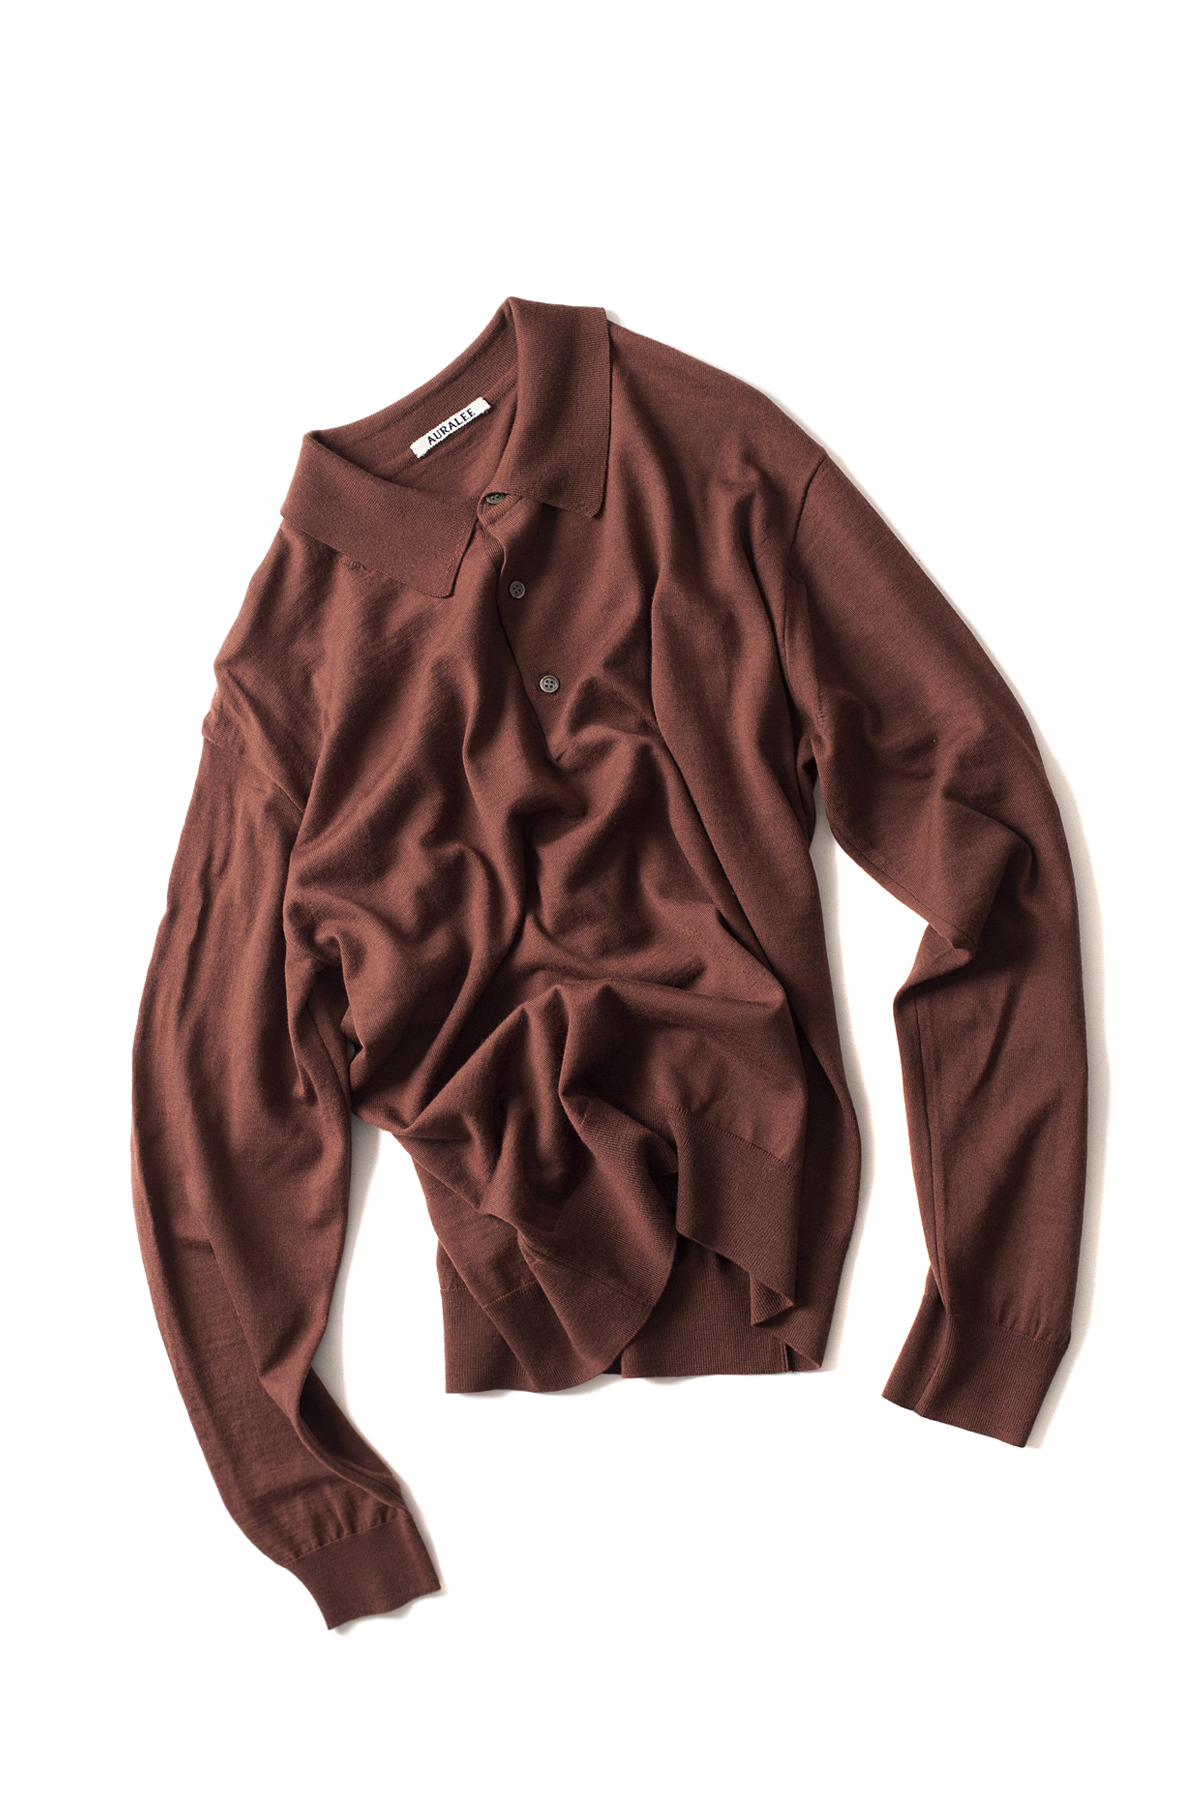 Auralee : Wool Cashmere High Gauge Knit Polo (Brown)